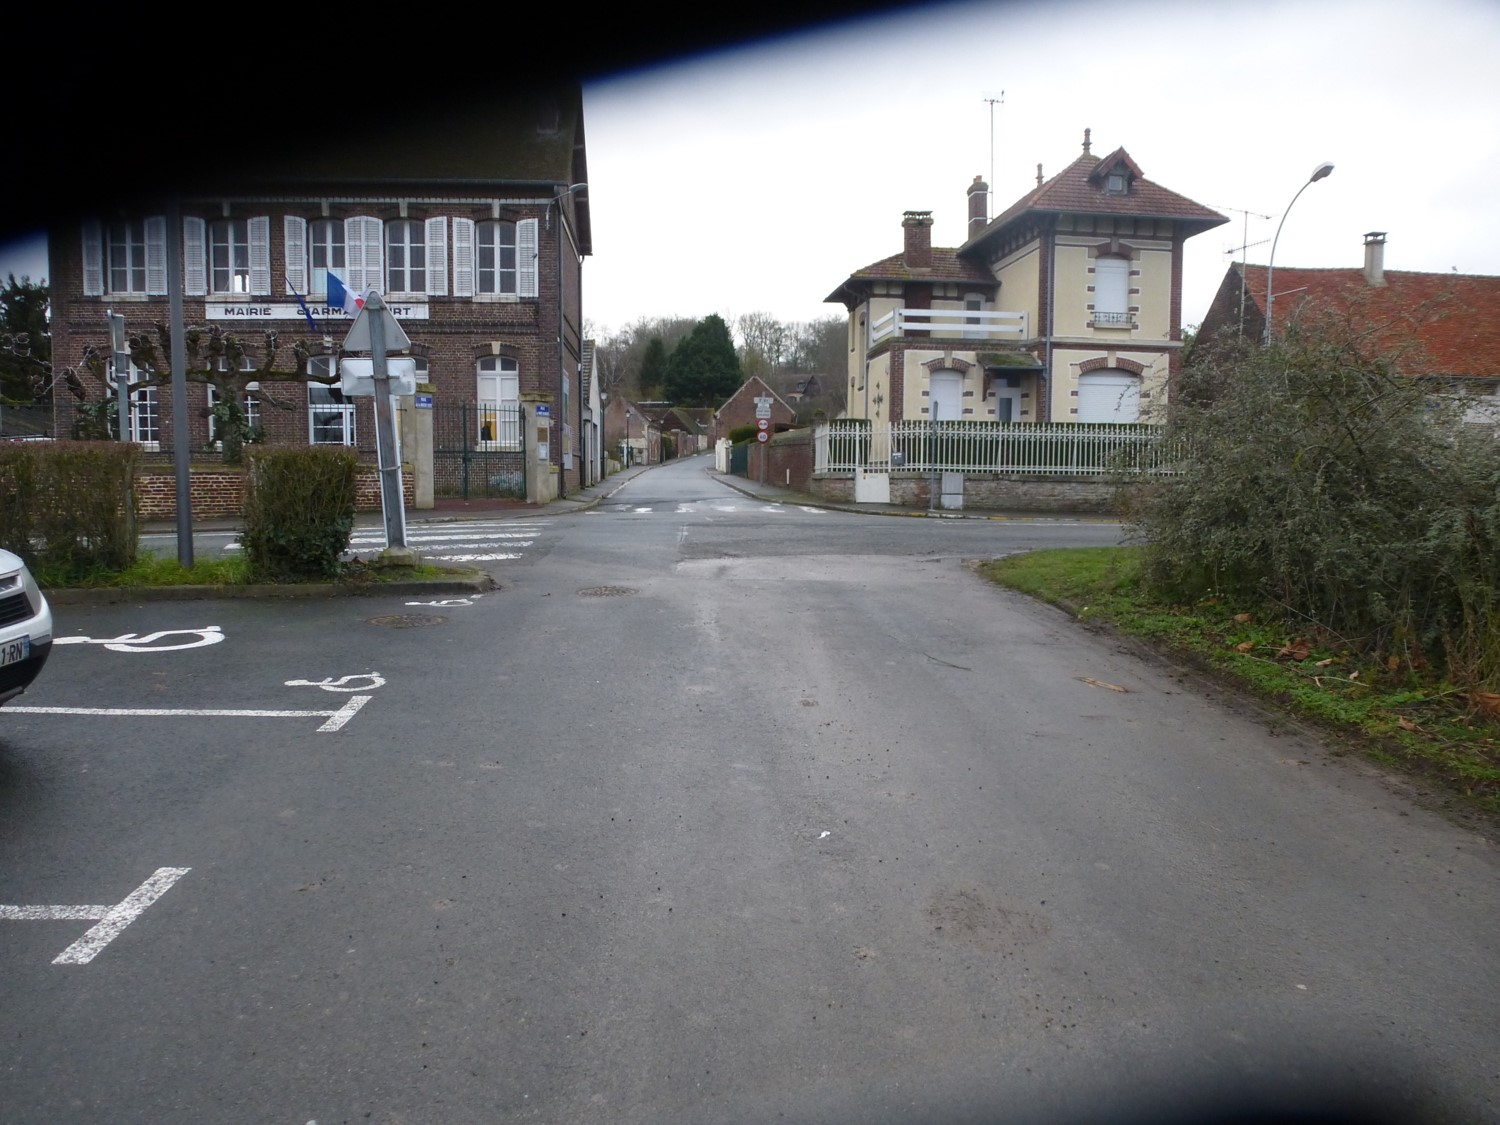 Image carrefour mairie.jpg